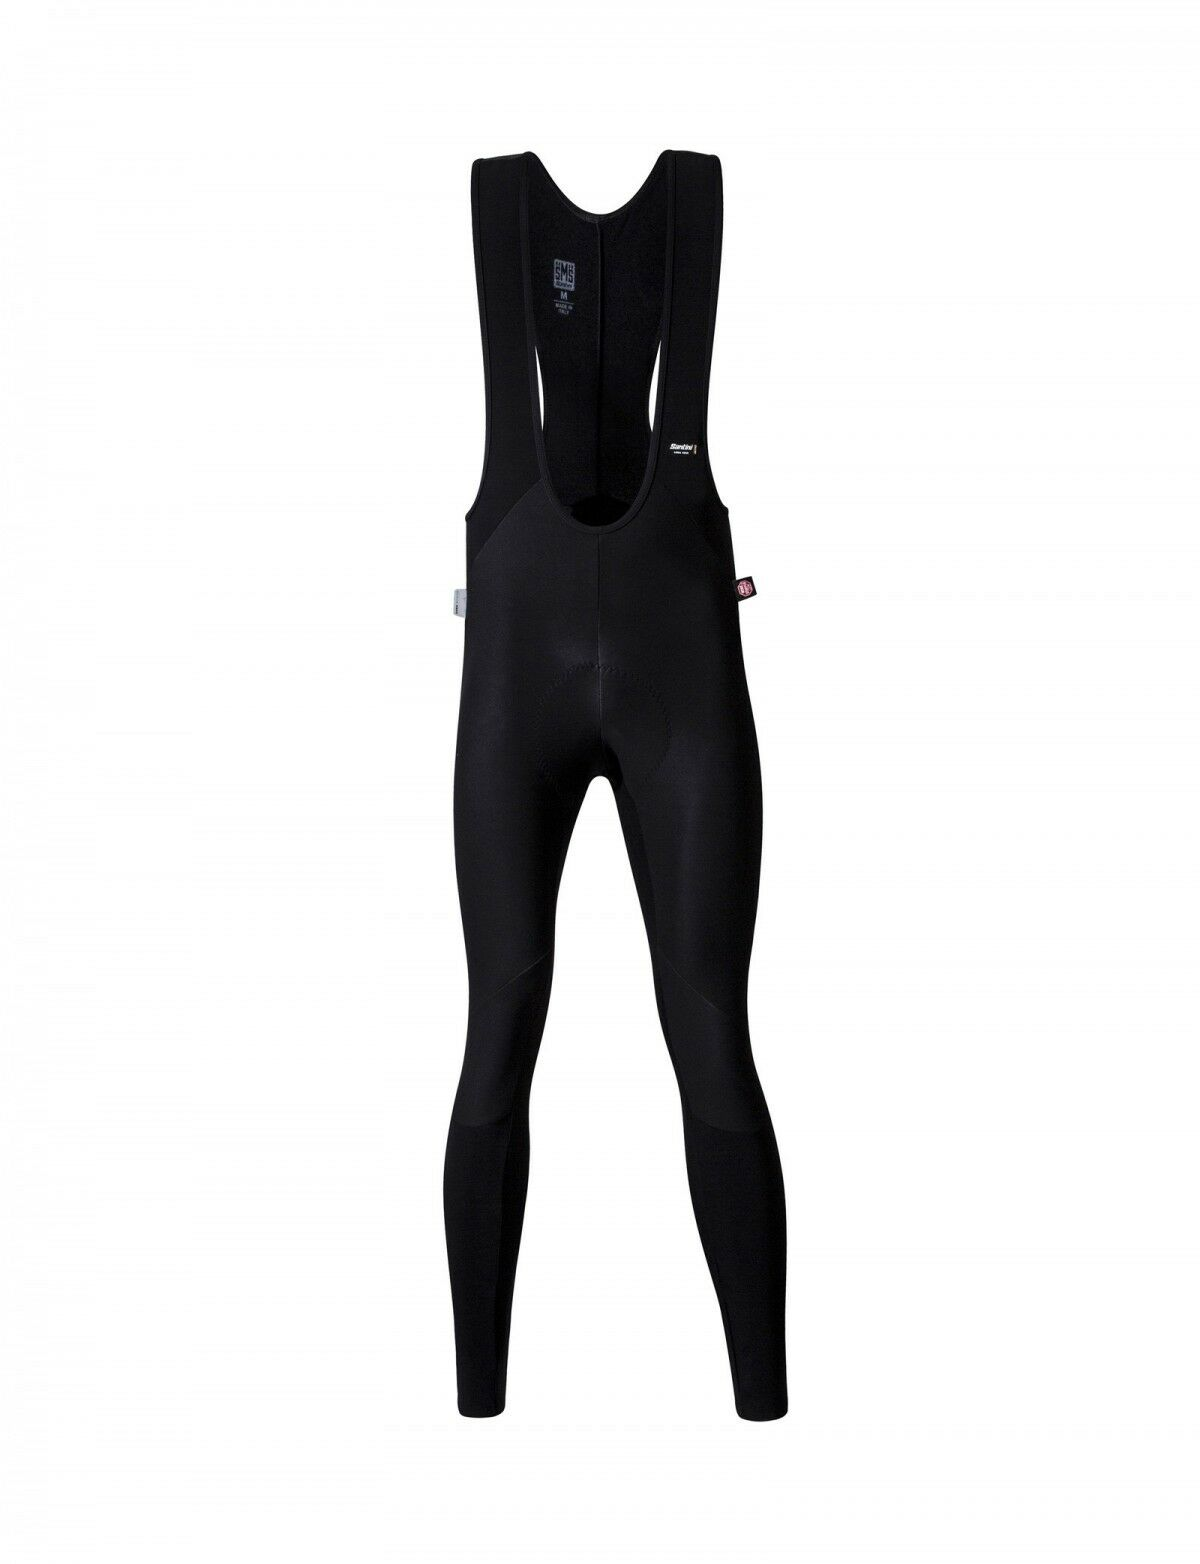 Jupiter Winter  Cycling BIB Tights with windproof front- made in  by Santini  shop online